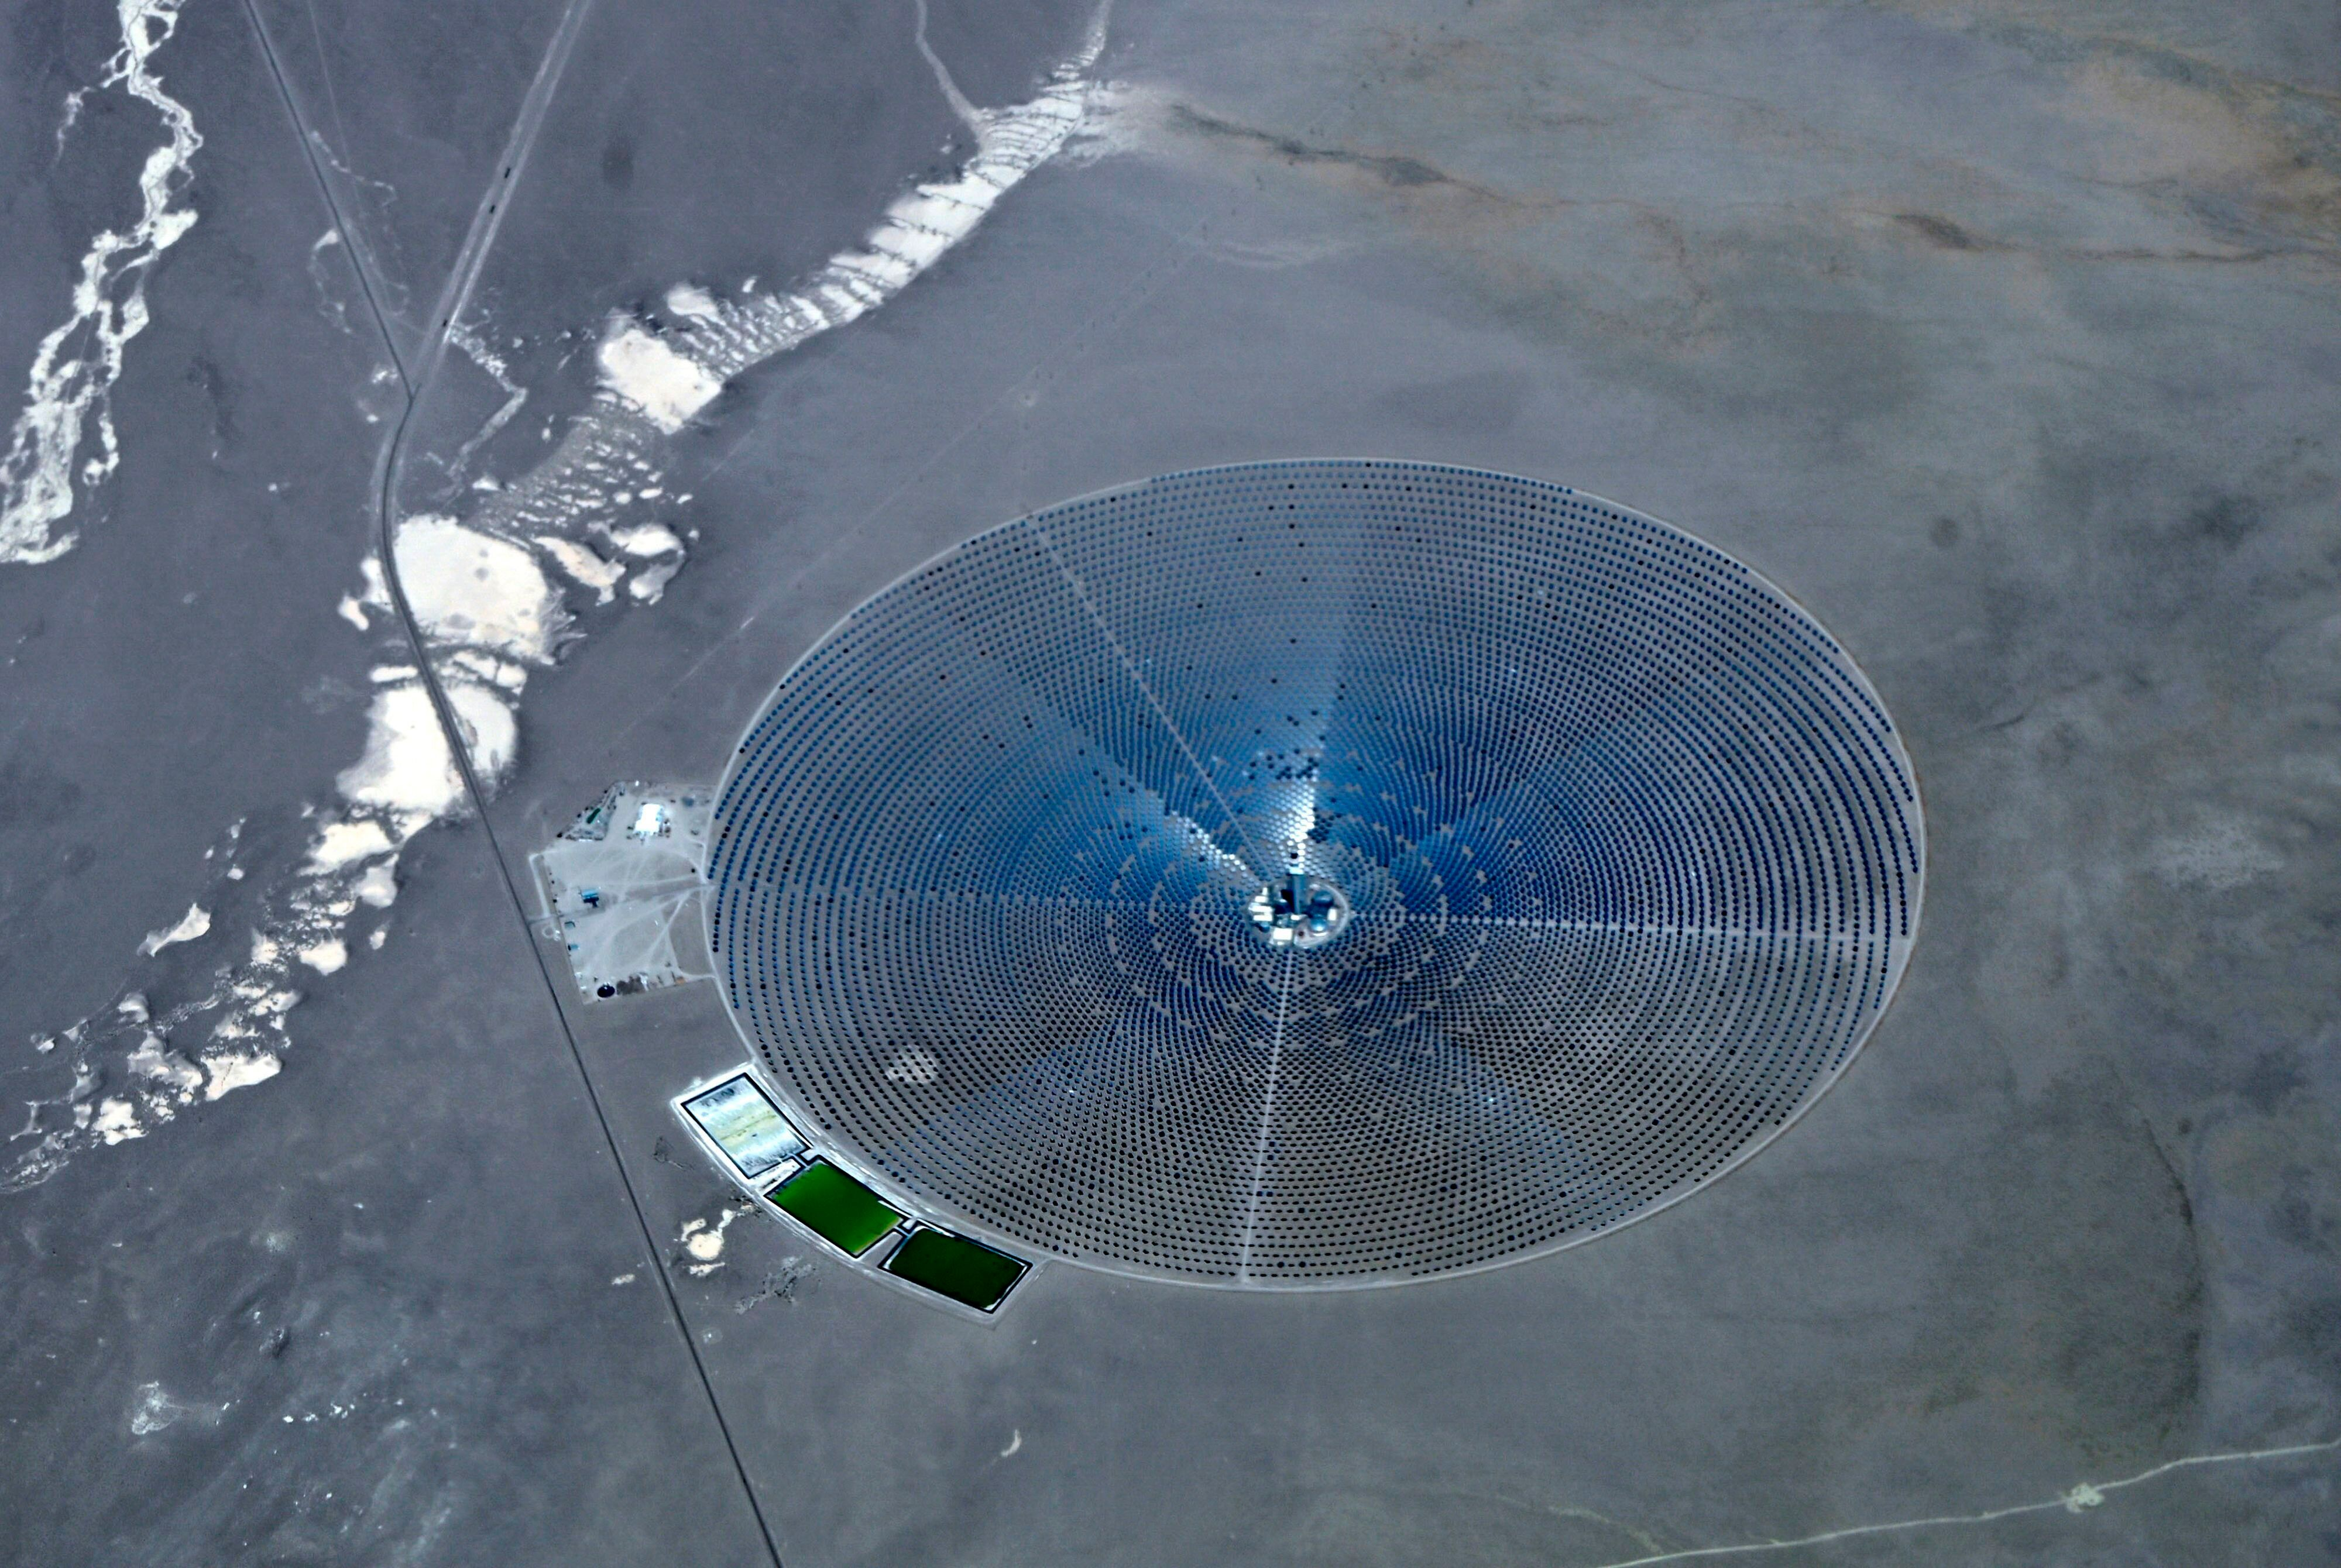 The Crescent Dunes Solar Energy Project, northwest of Las Vegas, was the first concentrated solar power plant with a central